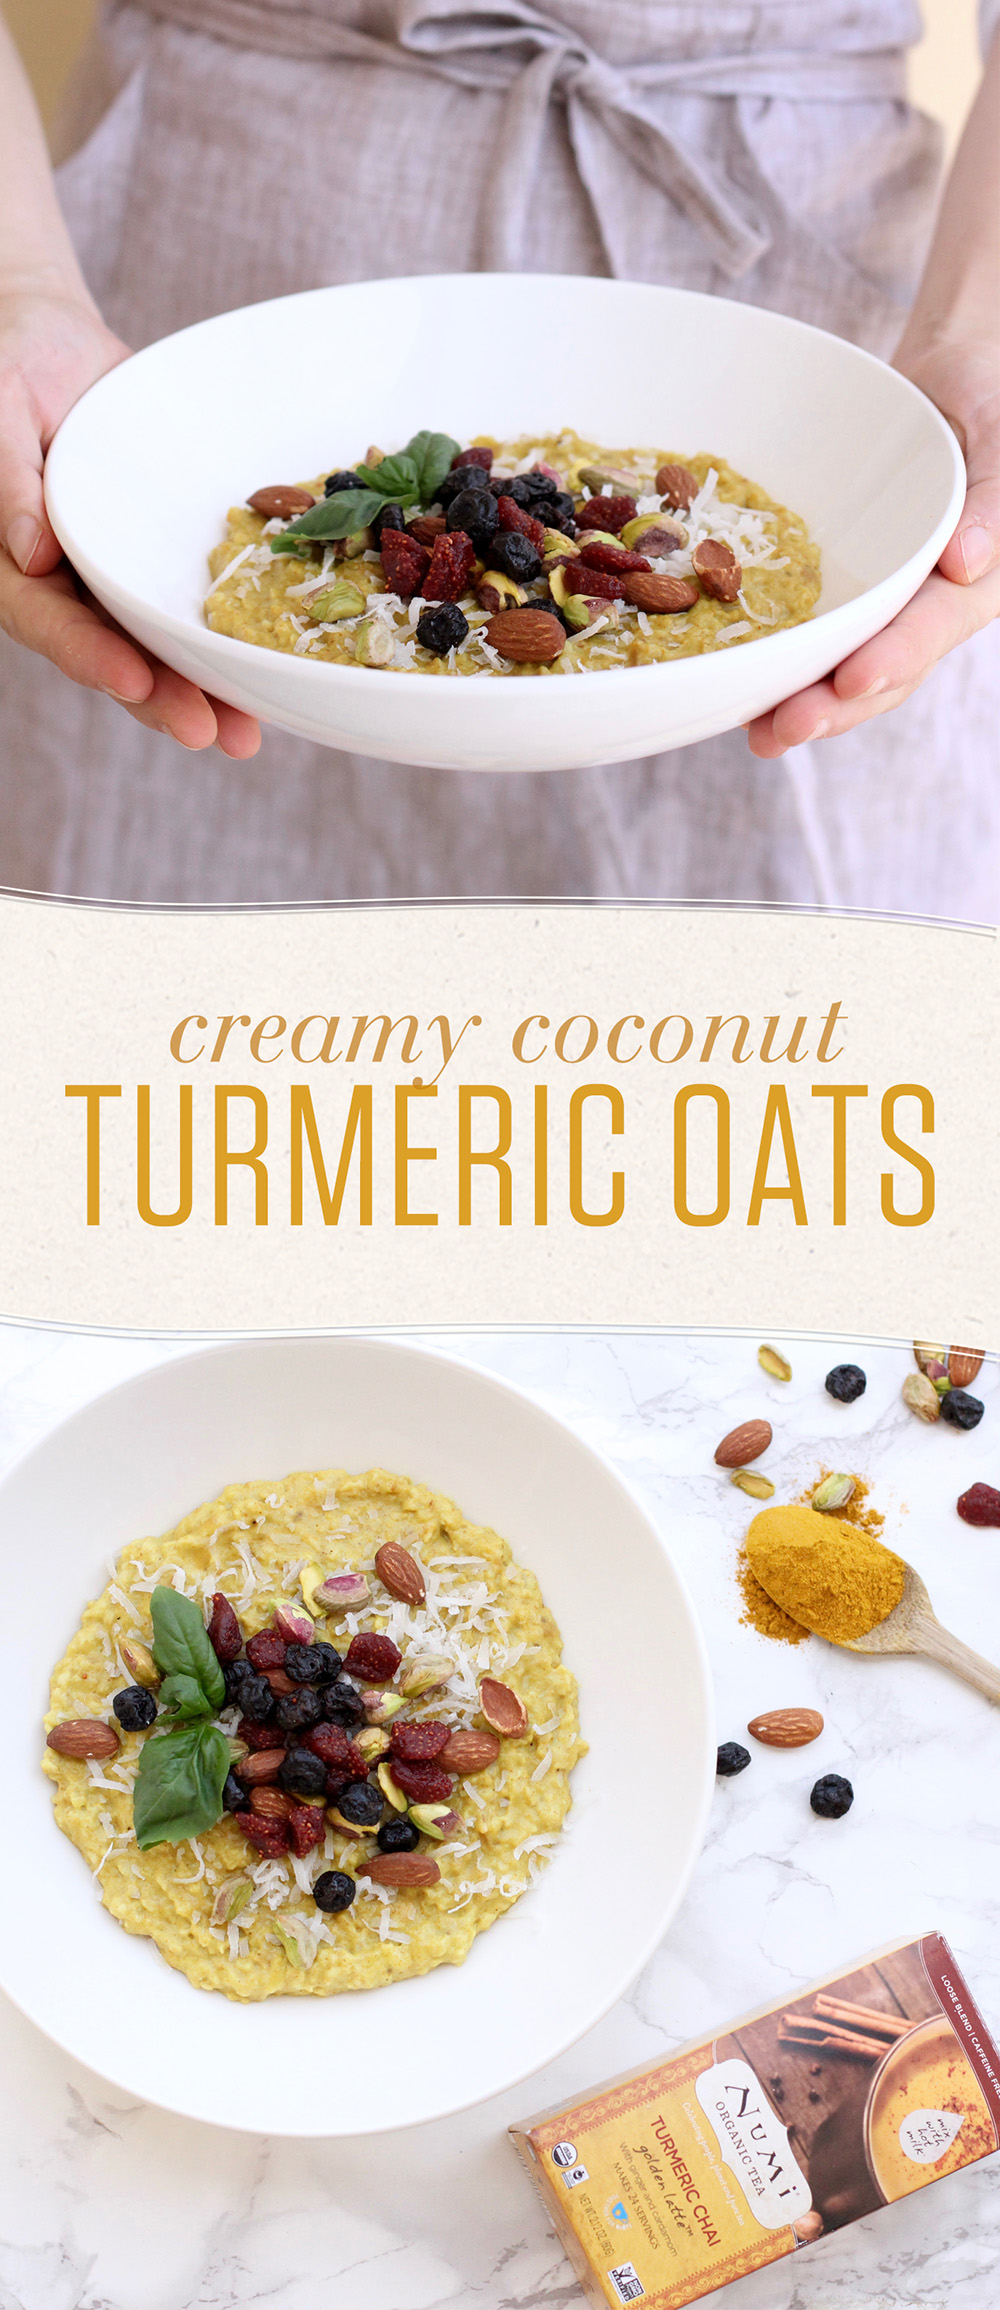 Spice up your breakfast! Turmeric Chai powder flavors this creamy, coconut milk-based oatmeal bowl that will bring sunshine to your morning.